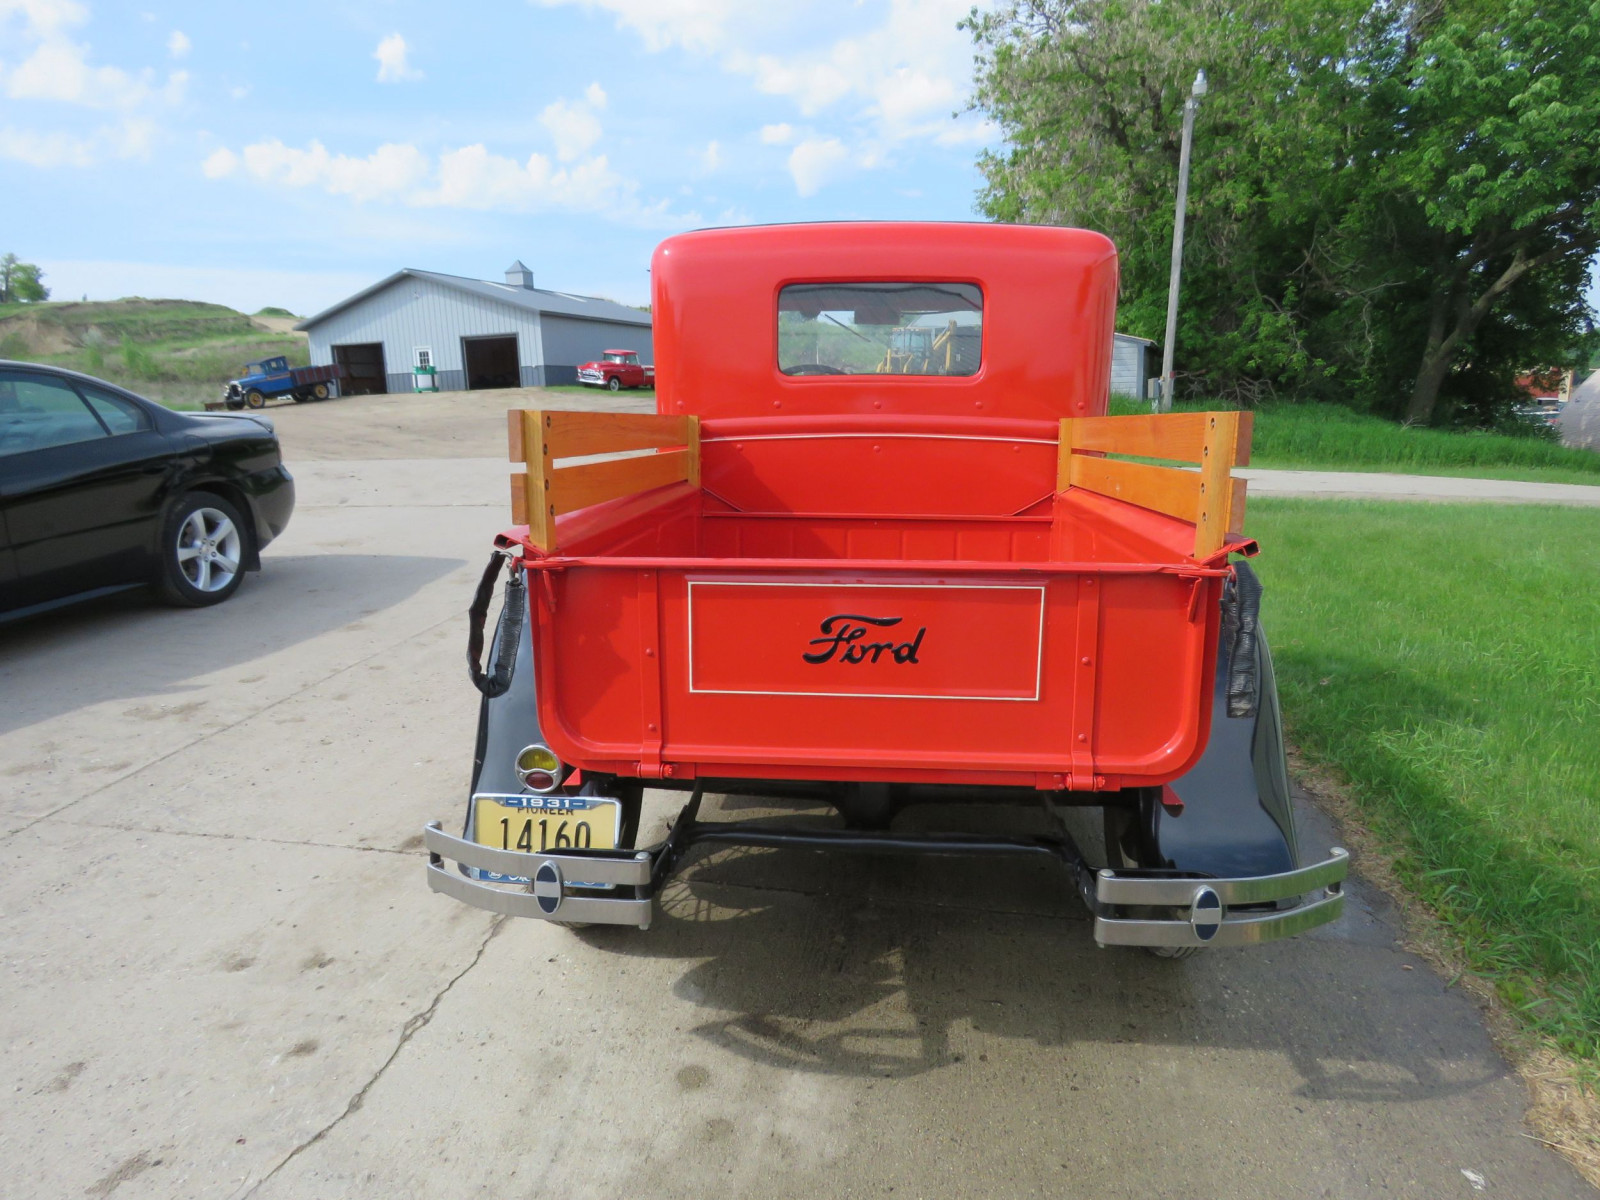 1931 Ford Model A Pickup - Image 5